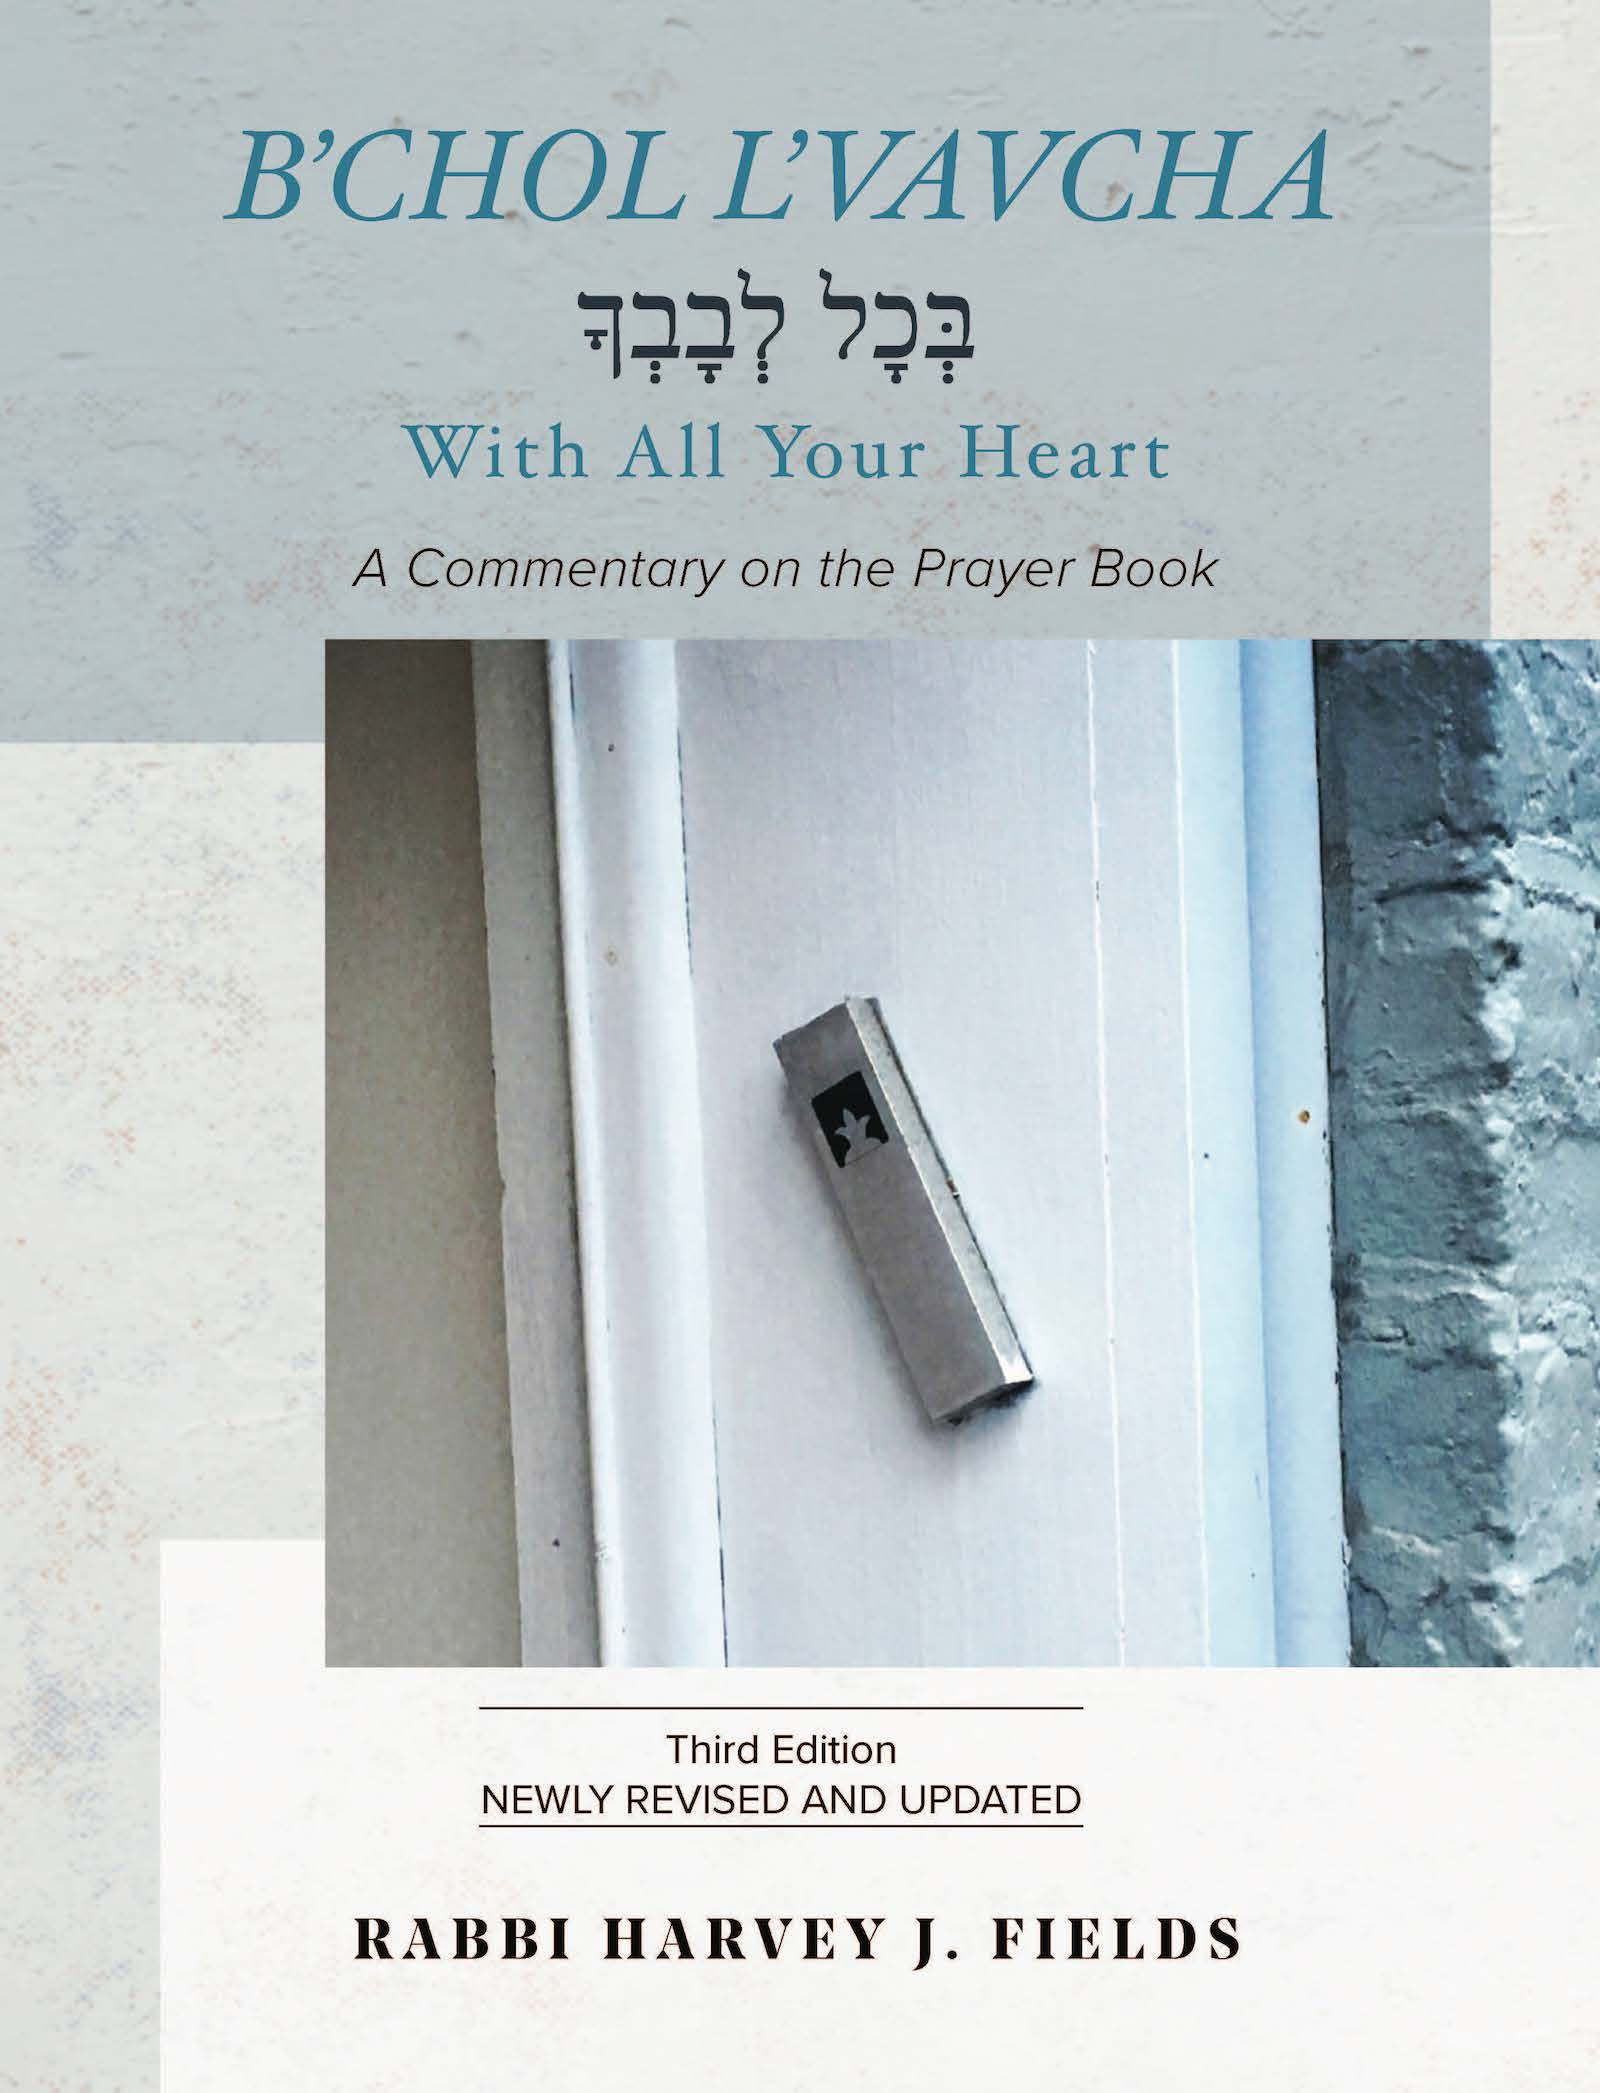 B'chol L'vavcha: With All Your Heart